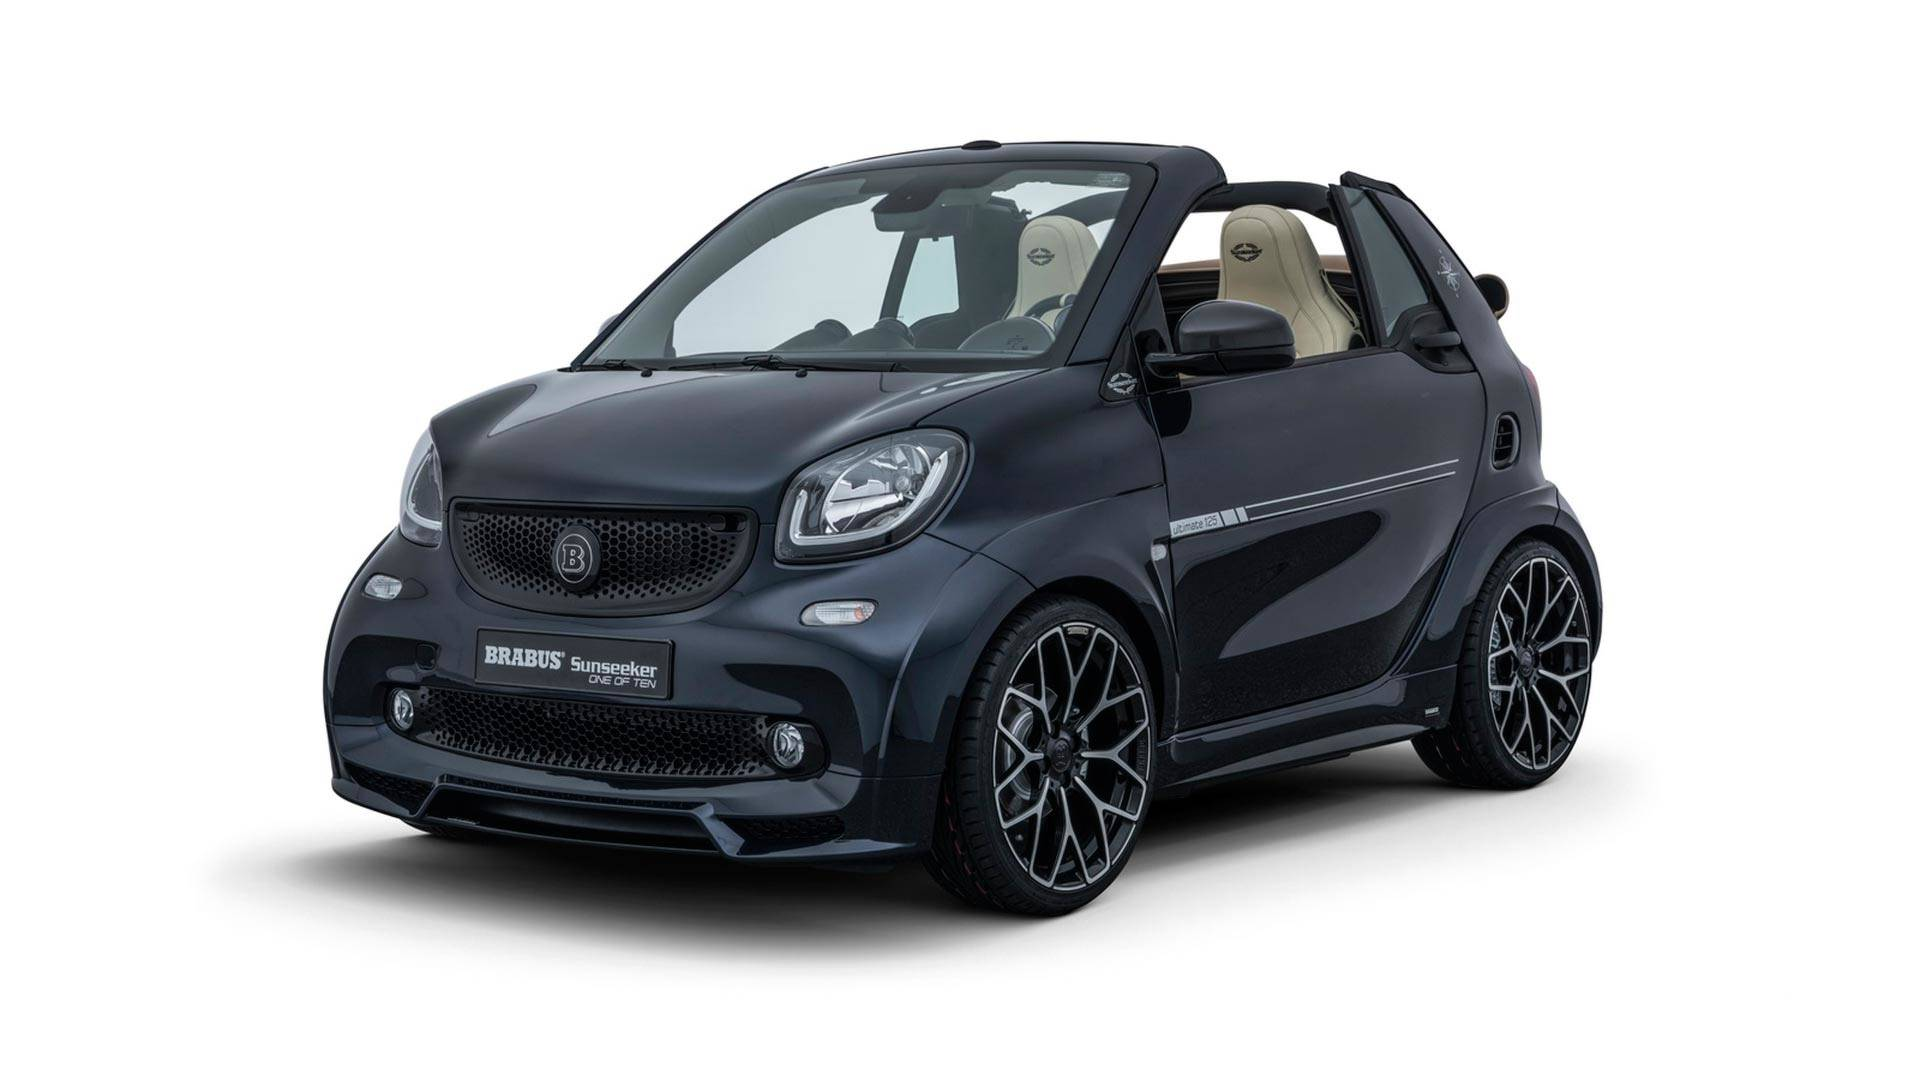 brabus lan a smart fortwo sunseeker automais. Black Bedroom Furniture Sets. Home Design Ideas